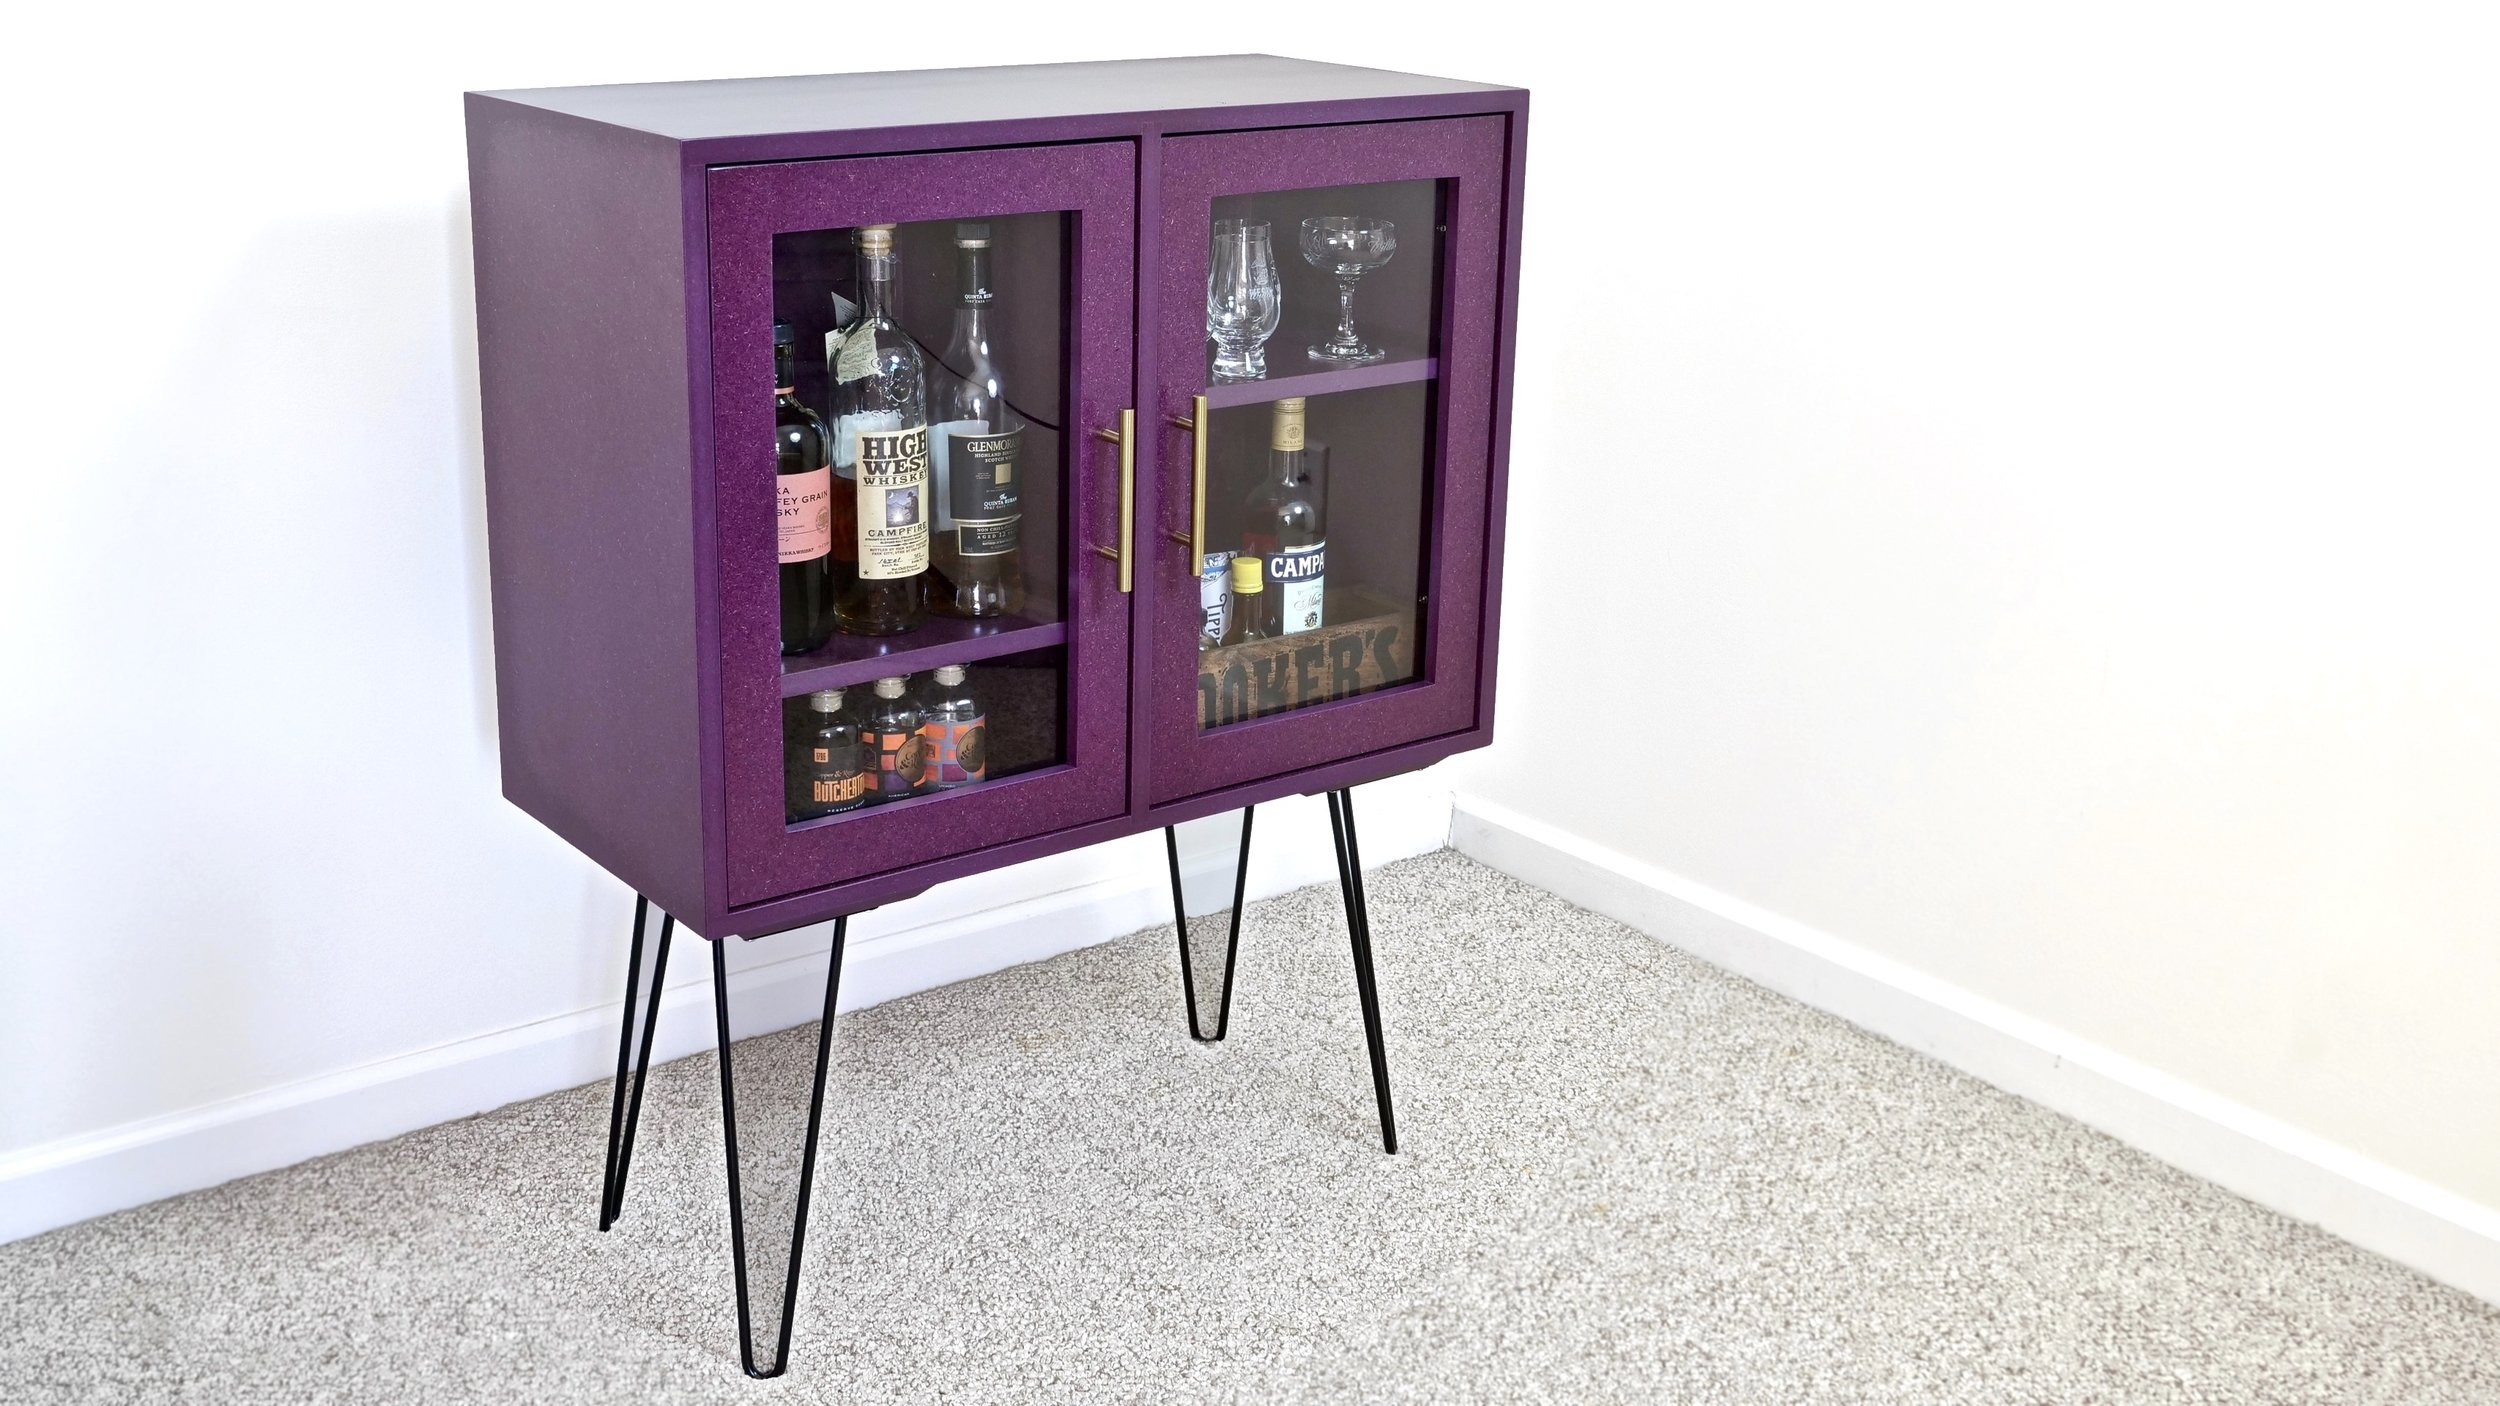 DIY Modern Bar Cabinet / Display Case With Hairpin Legs | How To Build    Woodworking